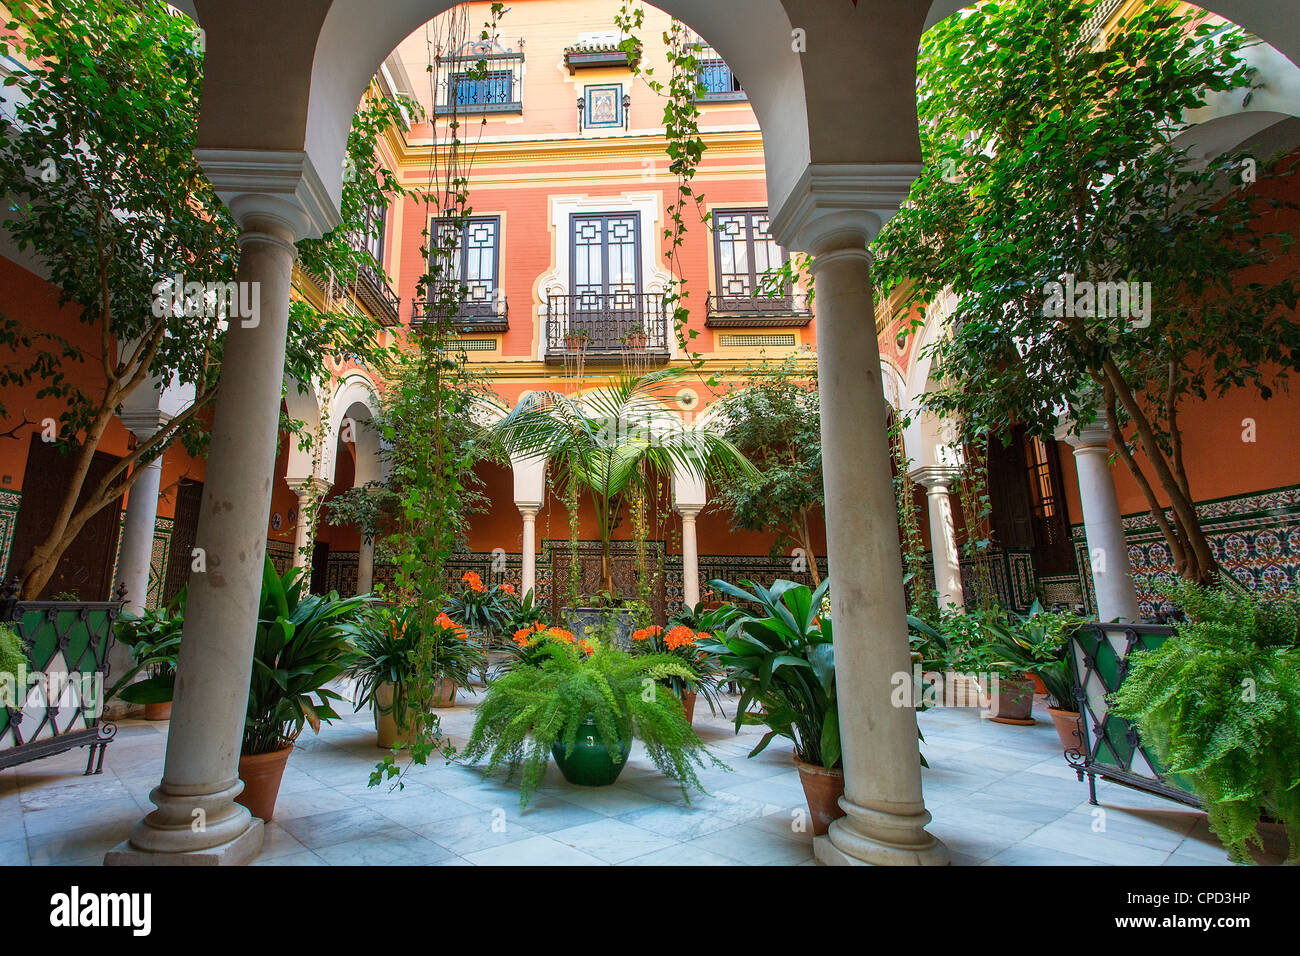 Europe, Spain Andalusia, Seville, Patio in Santa Cruz District - Stock Image